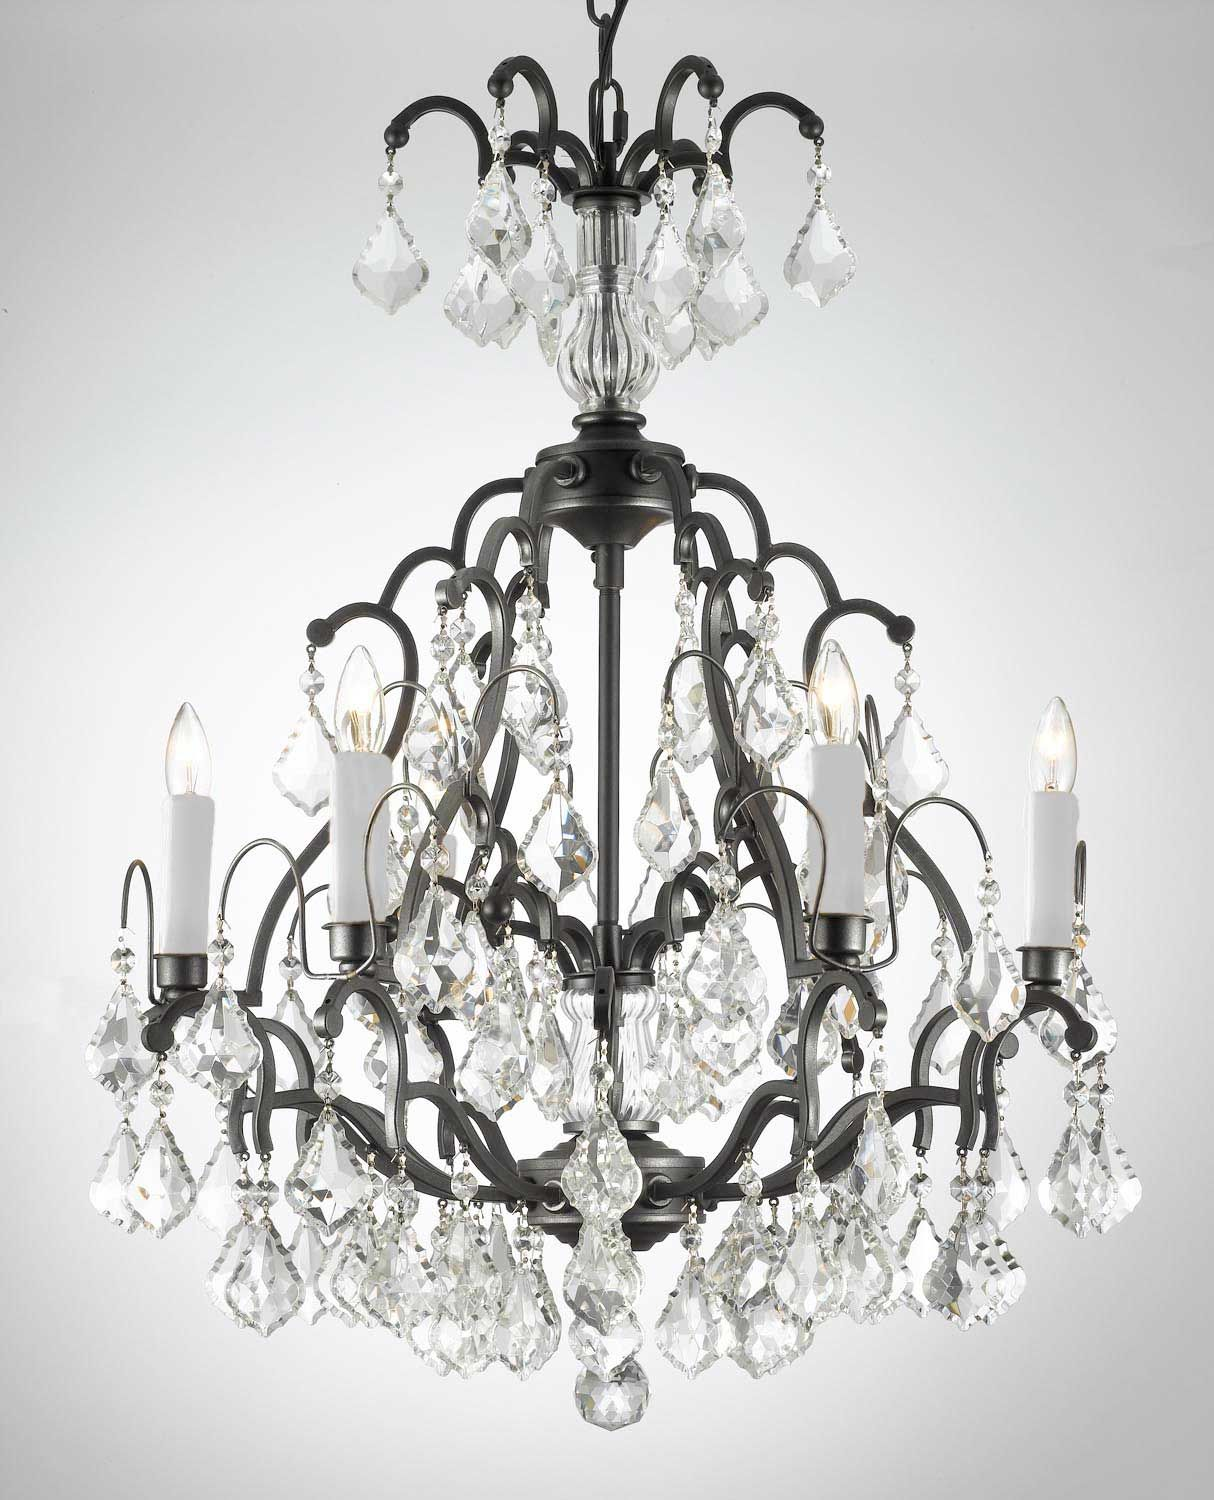 G7 443 6 Wc Gallery Wrought With Crystal Versailles Iron Chandelier